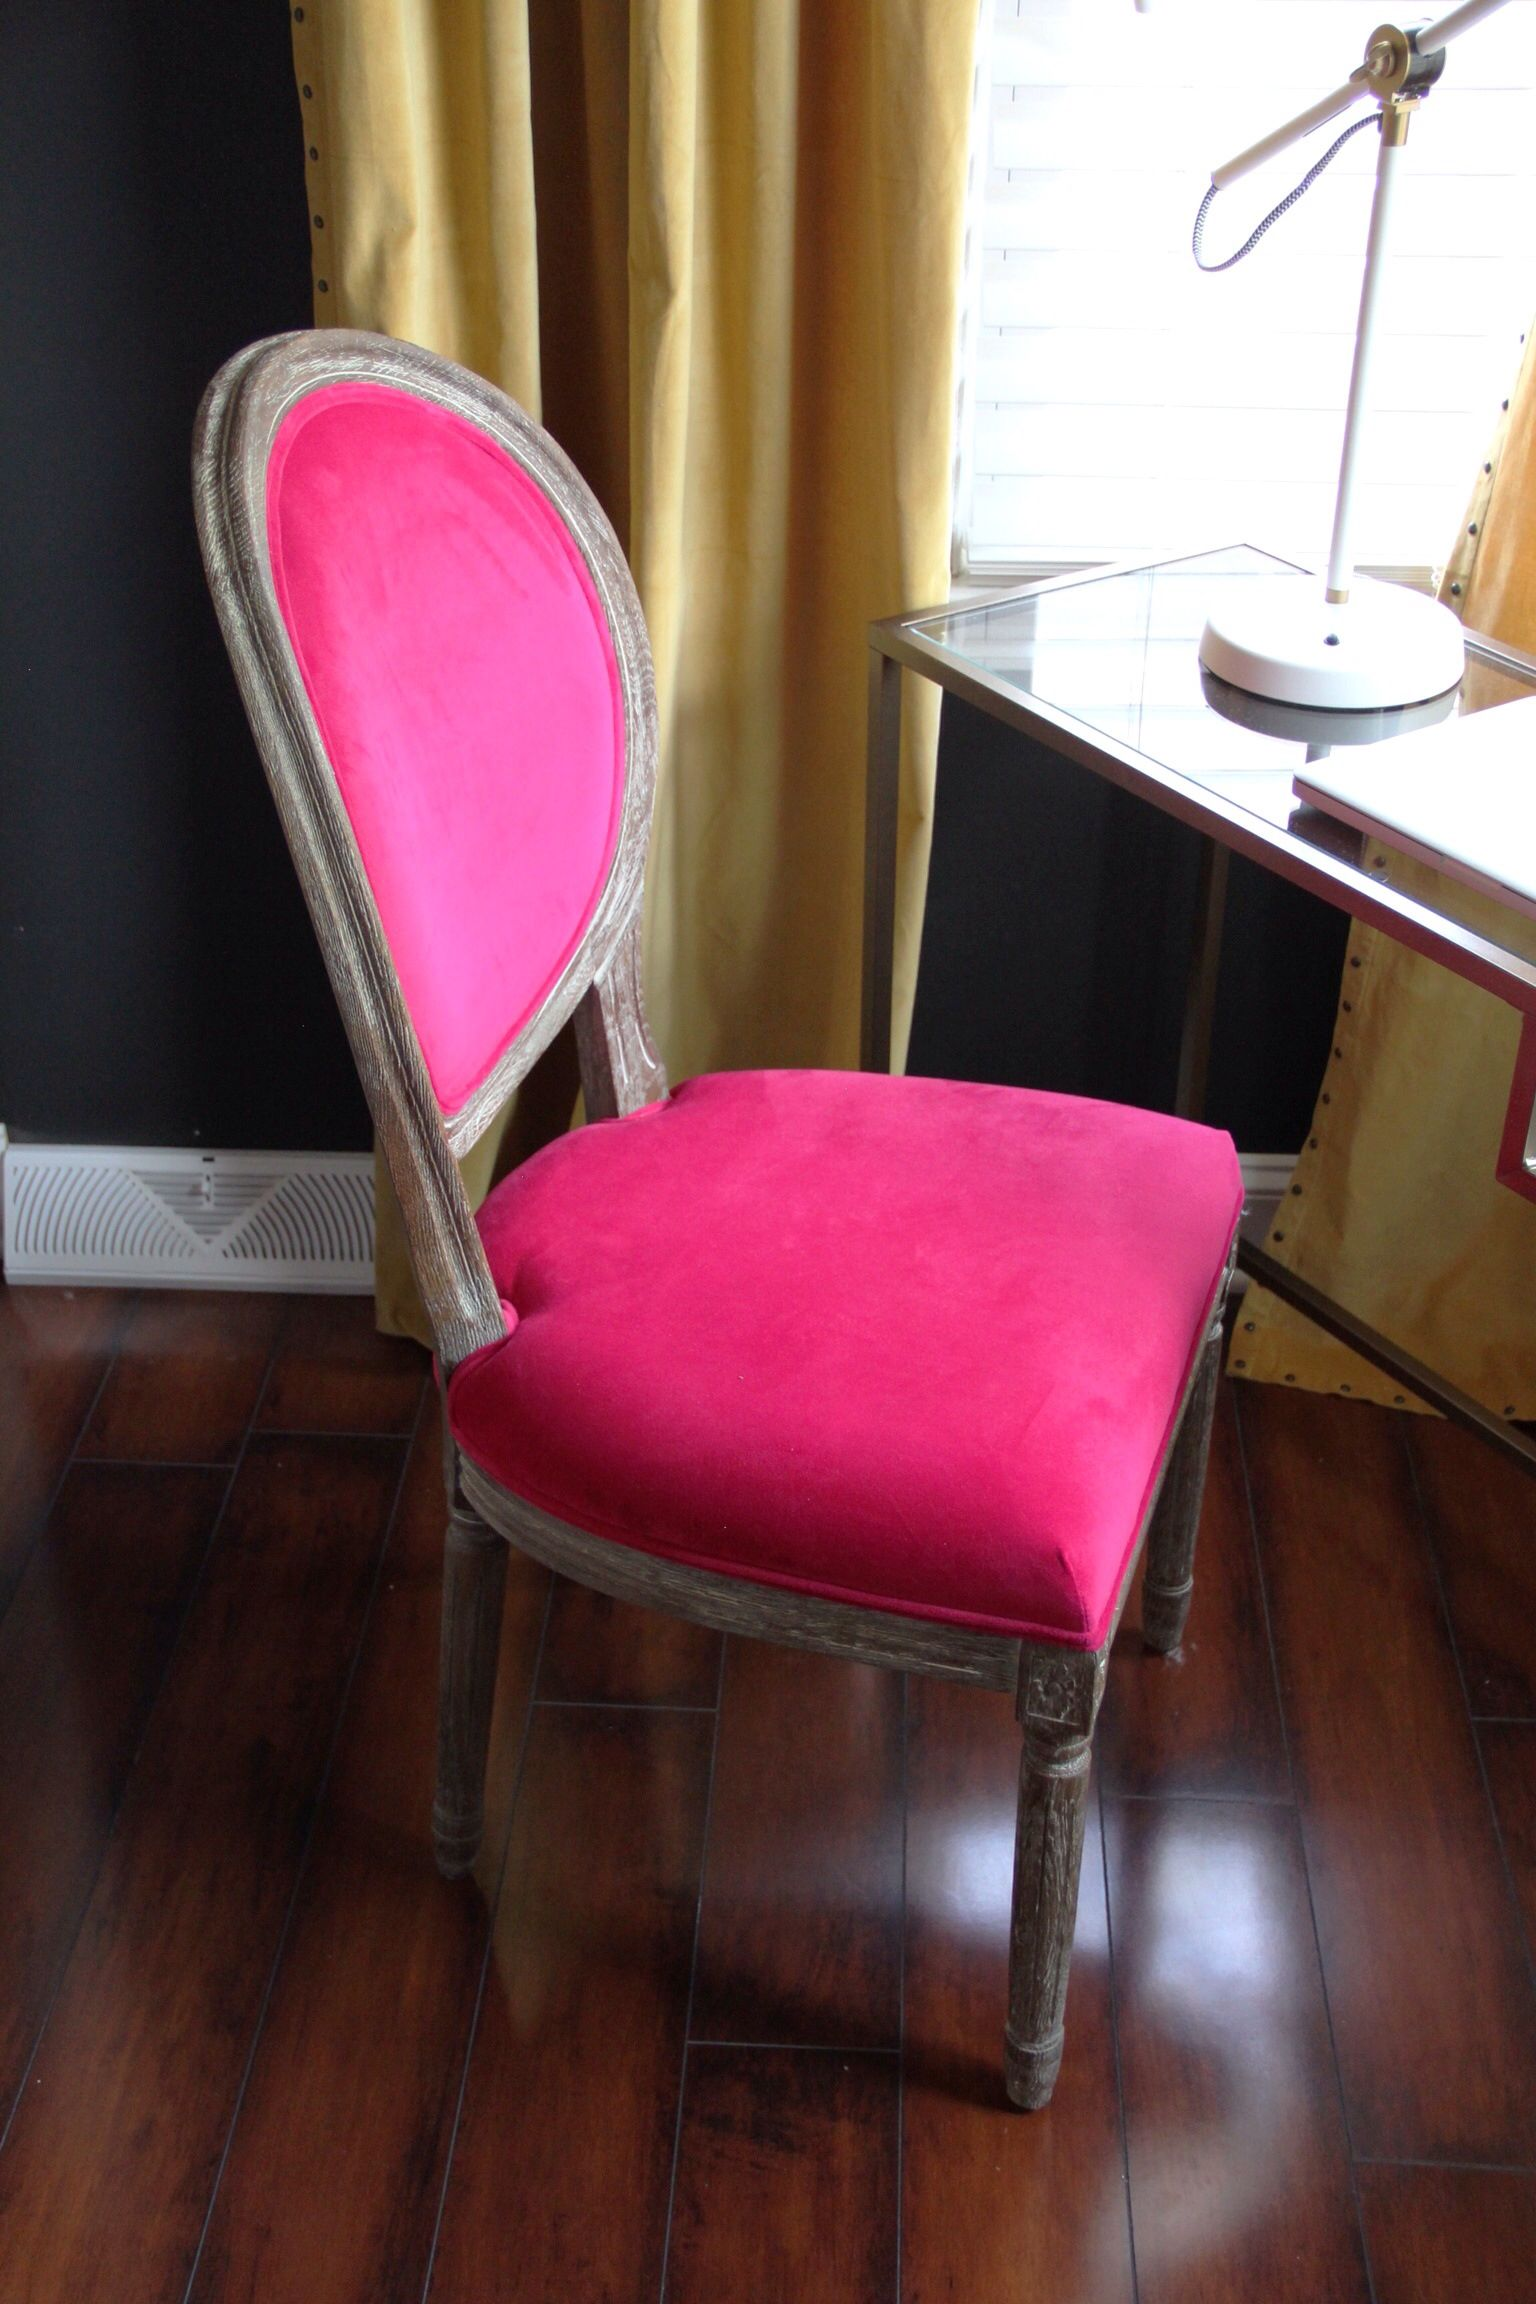 Pink velvet dining chair from Cost Plus World Market I am